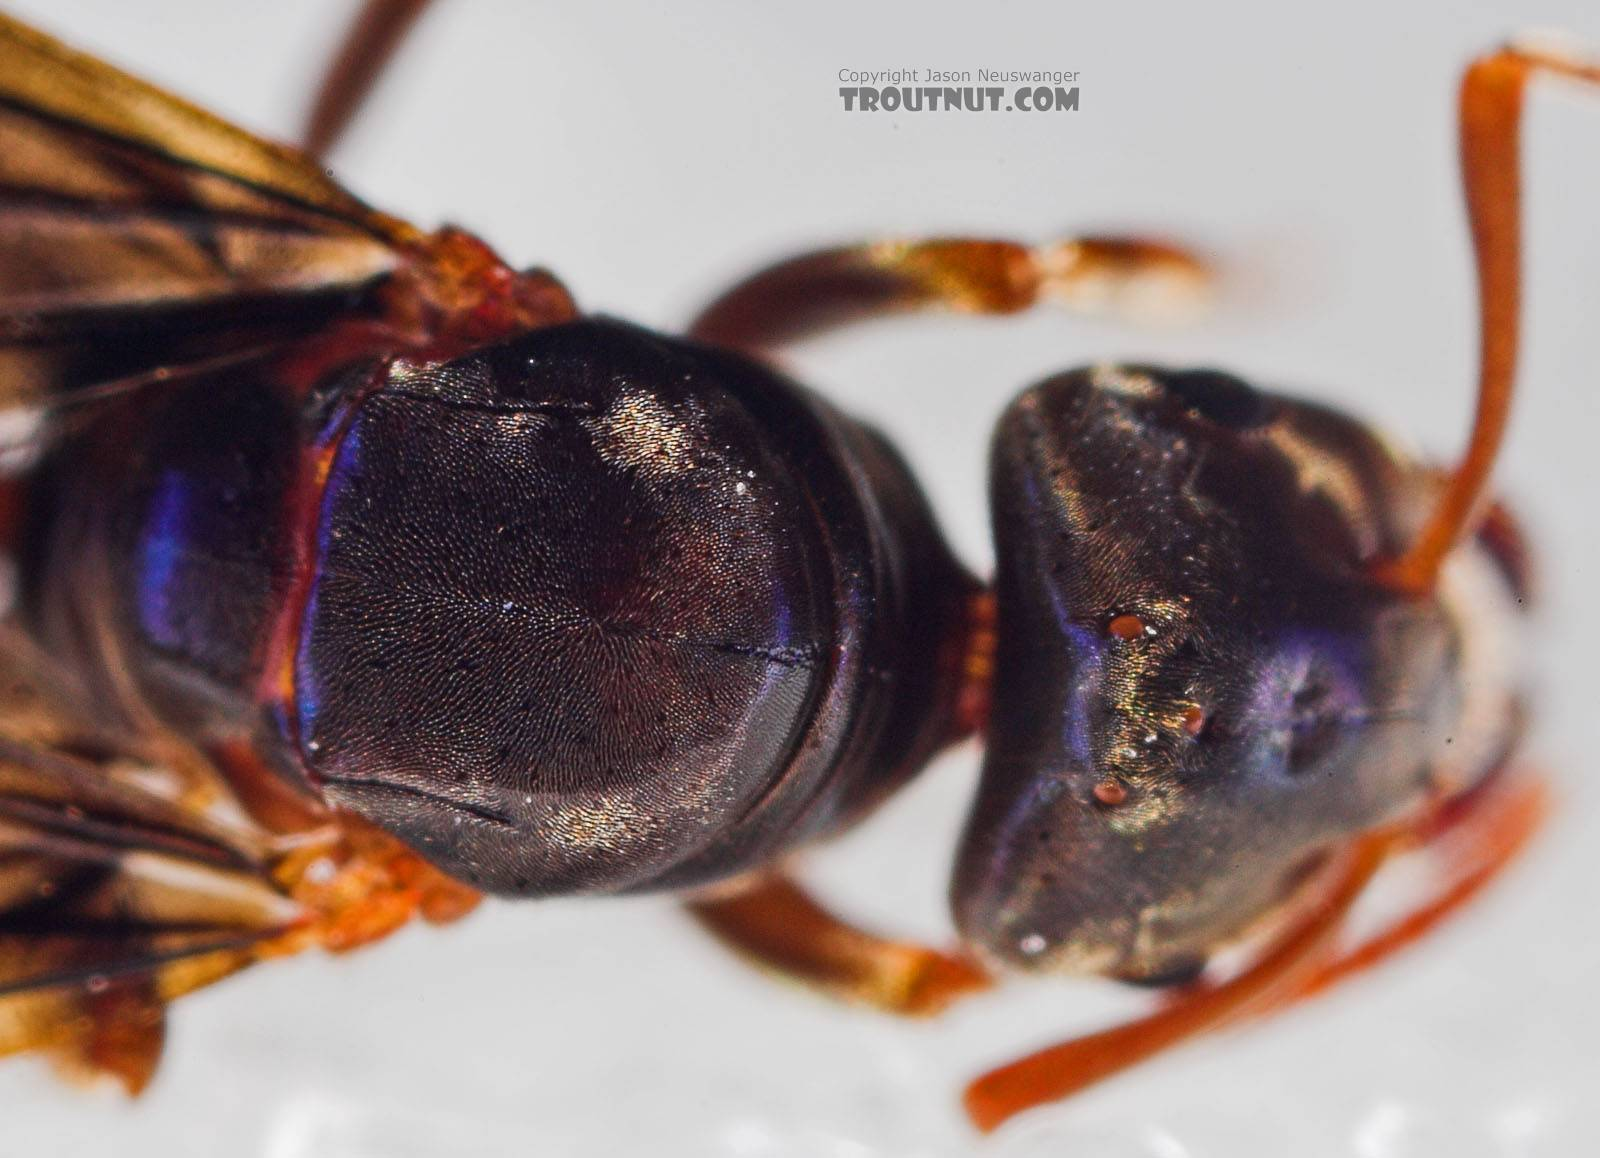 Formicidae (Ants) Ant Adult from the Neversink River in New York